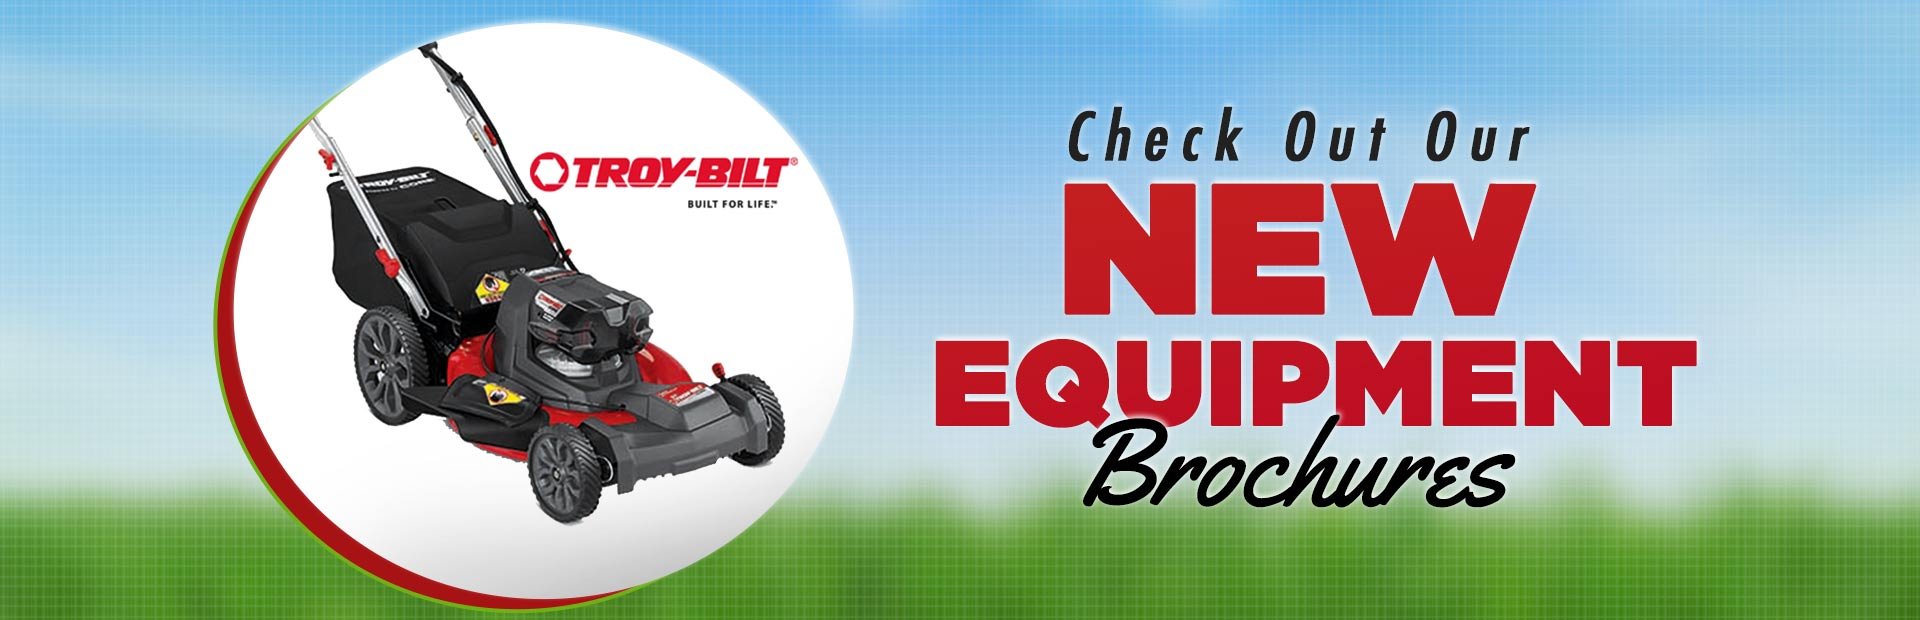 New Troy-Bilt Equipment: Click here to view our brochures.